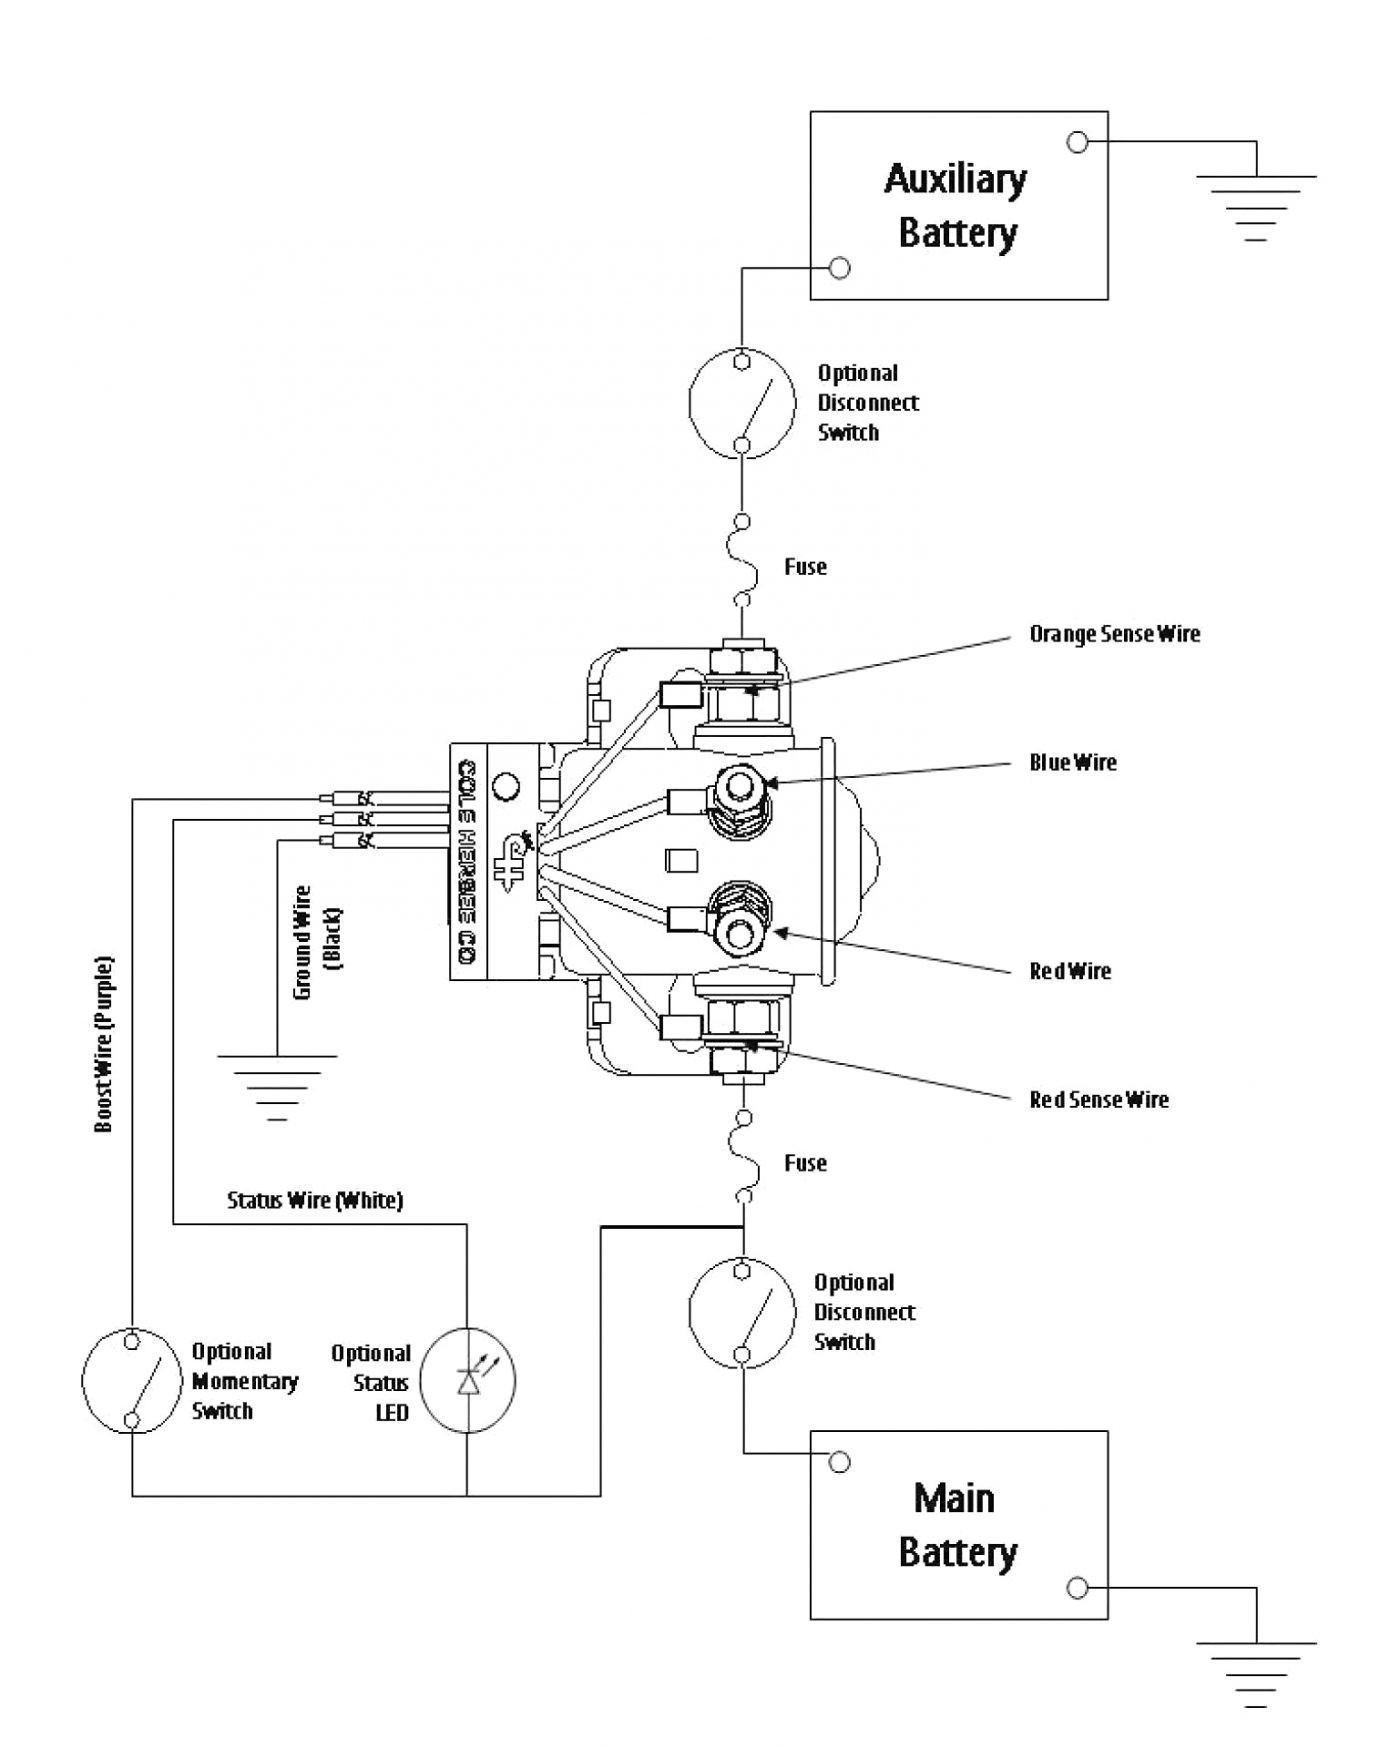 battery isolator wiring diagram manufacturers Download-Wiring Diagram Isolator Switch New Wiring Diagram Alternator To Battery New Wiring Diagram For Isolator 5-r